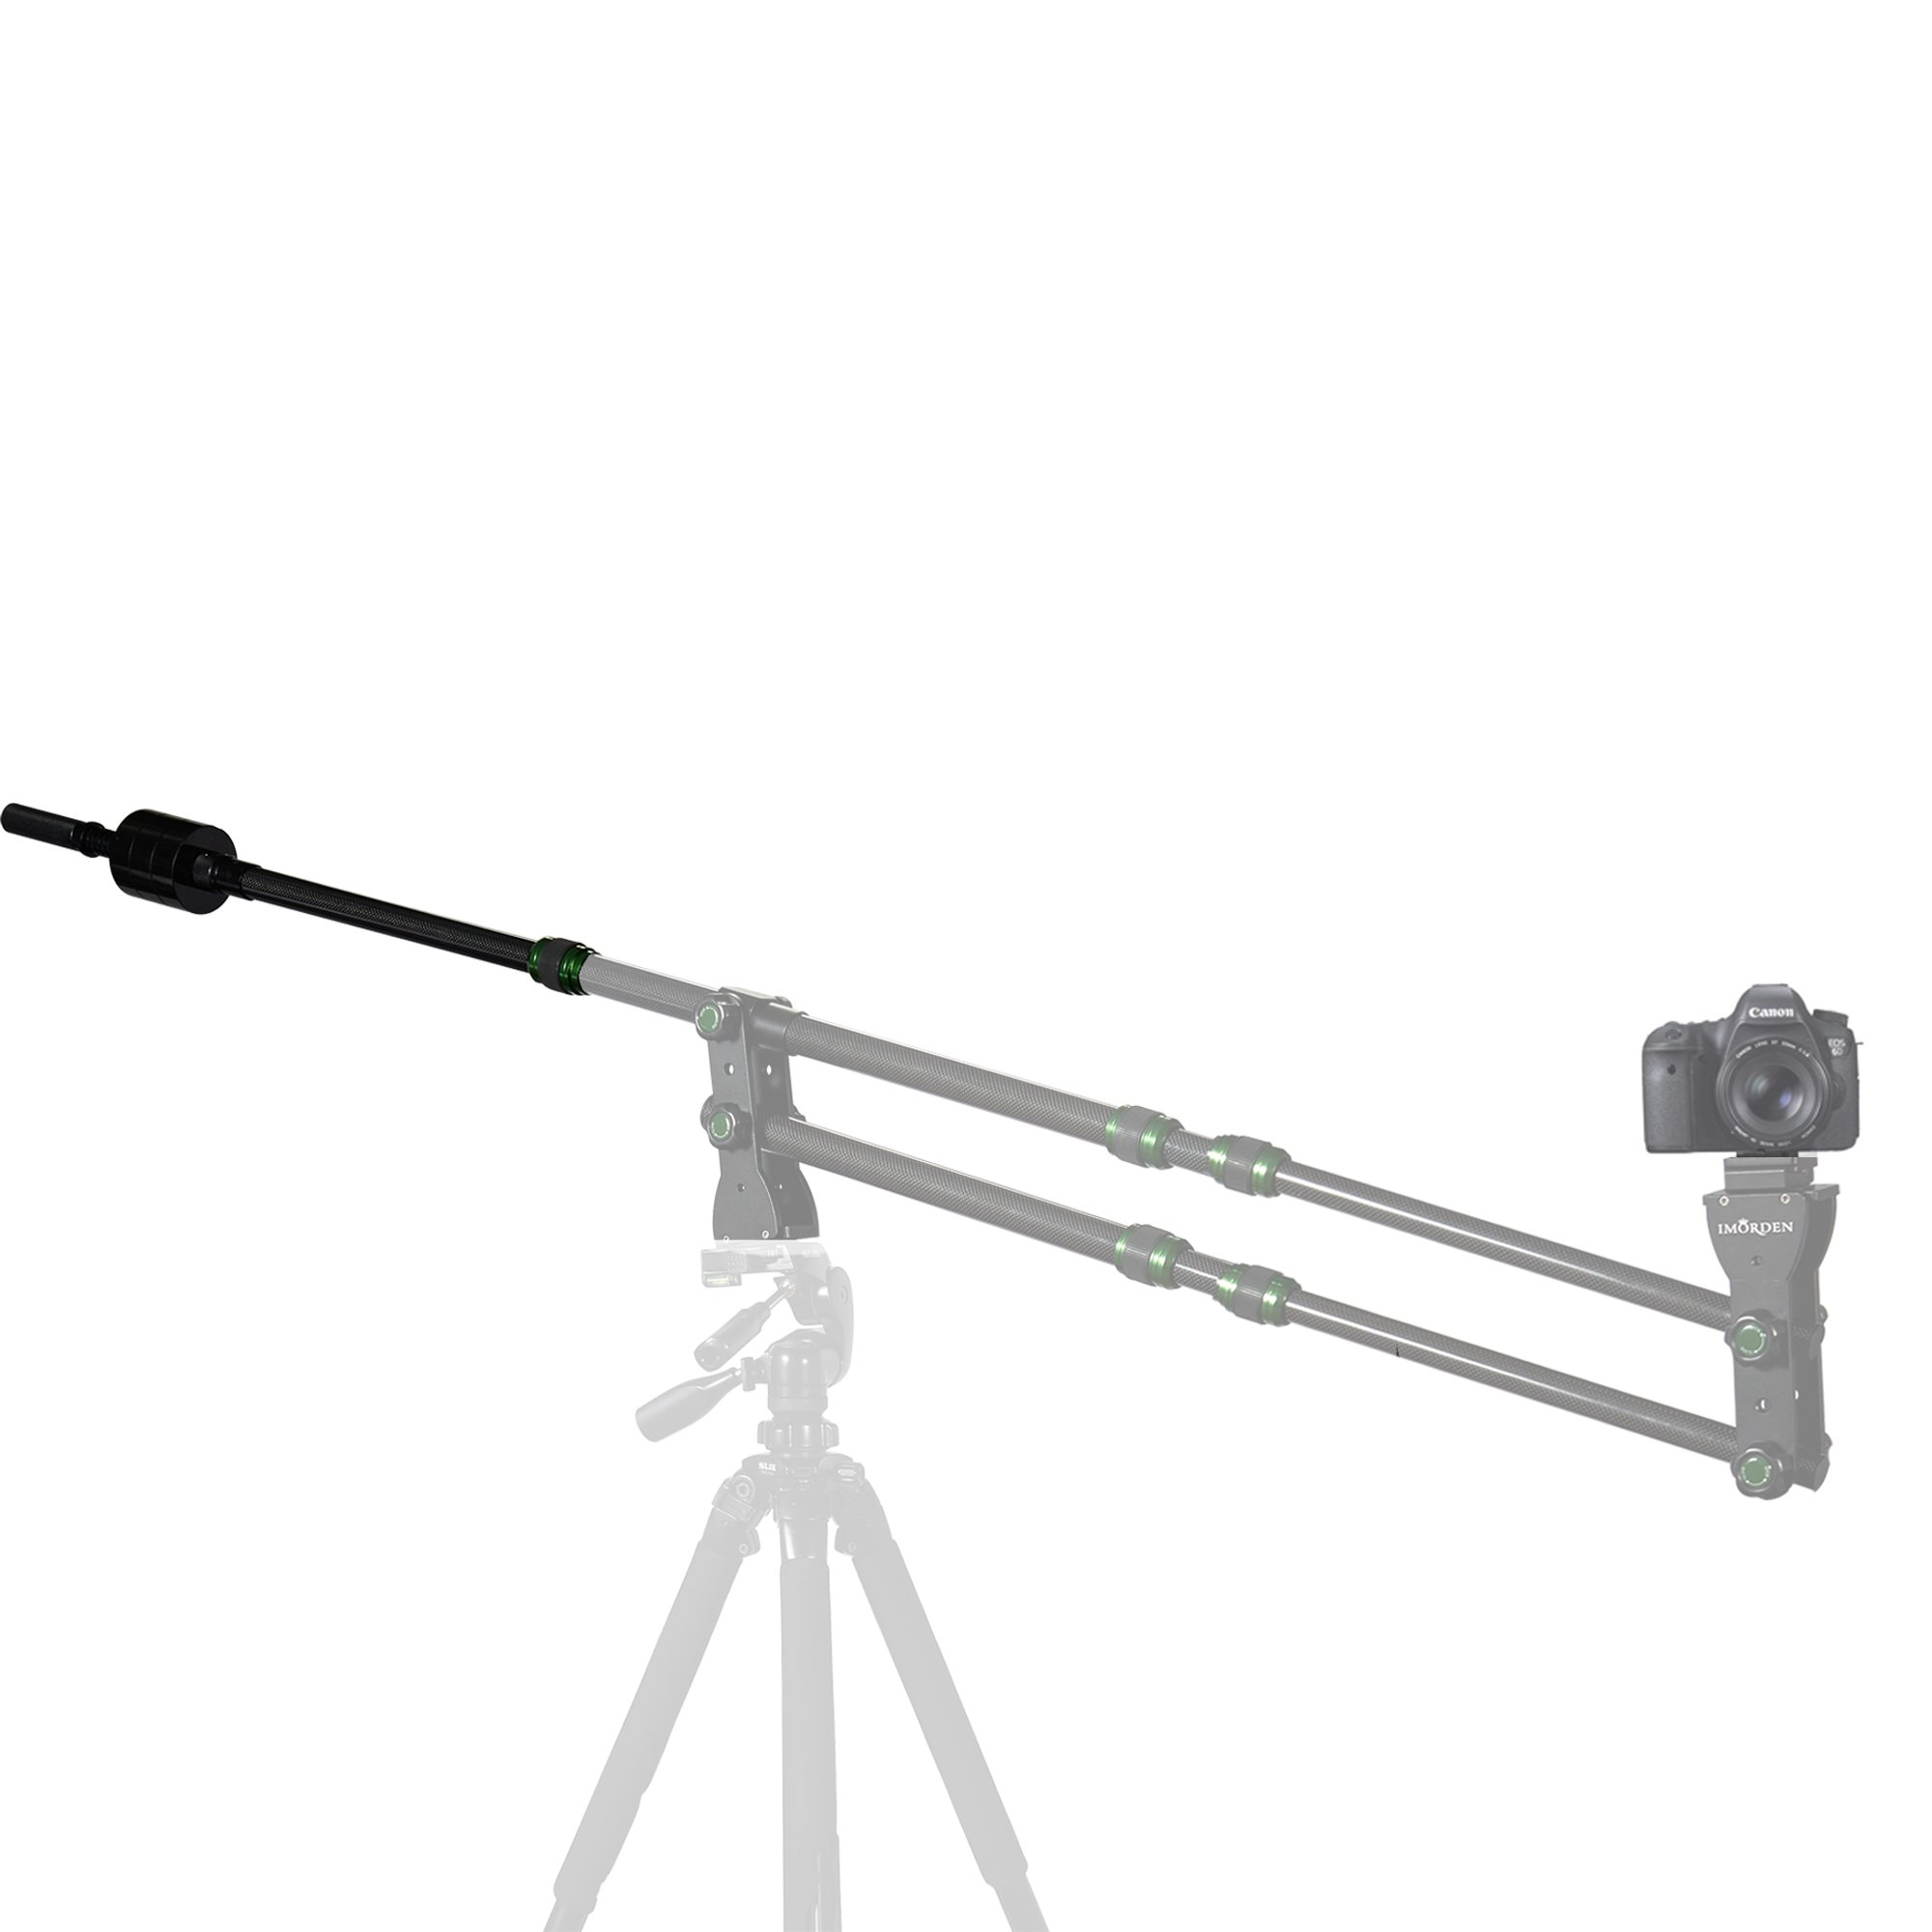 IMORDEN Carbon Fiber Tail Rod with 1kg/2.2lbs Counterweight Balance Weight x3 for Mini Jib Arm Camera Crane